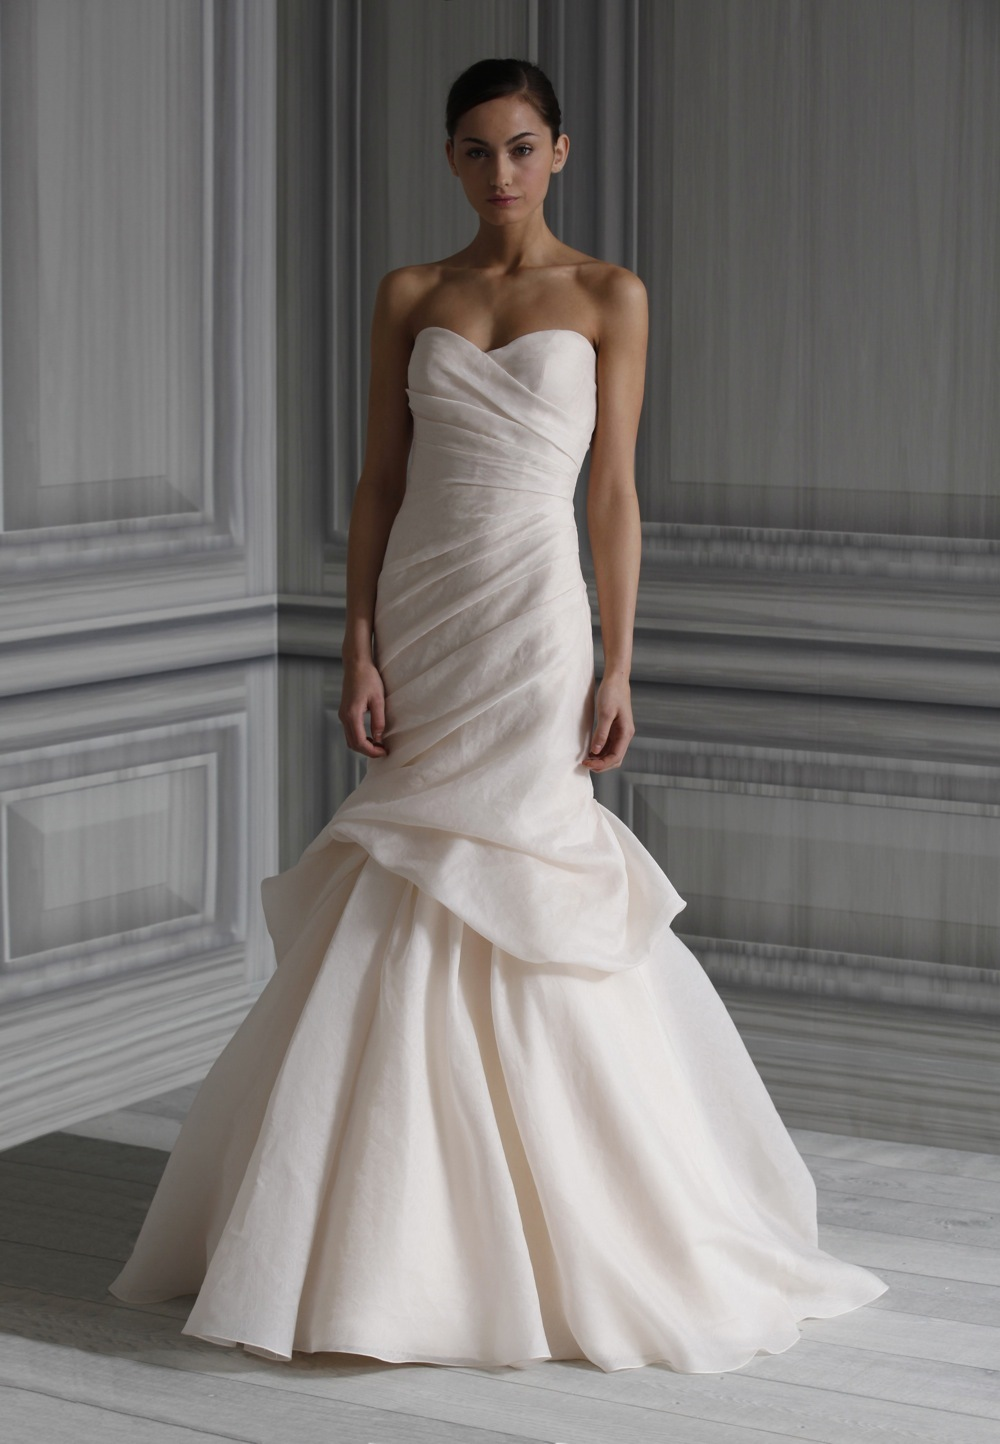 Wedding-dress-monique-lhuillier-bridal-gowns-spring-2012-peony.full